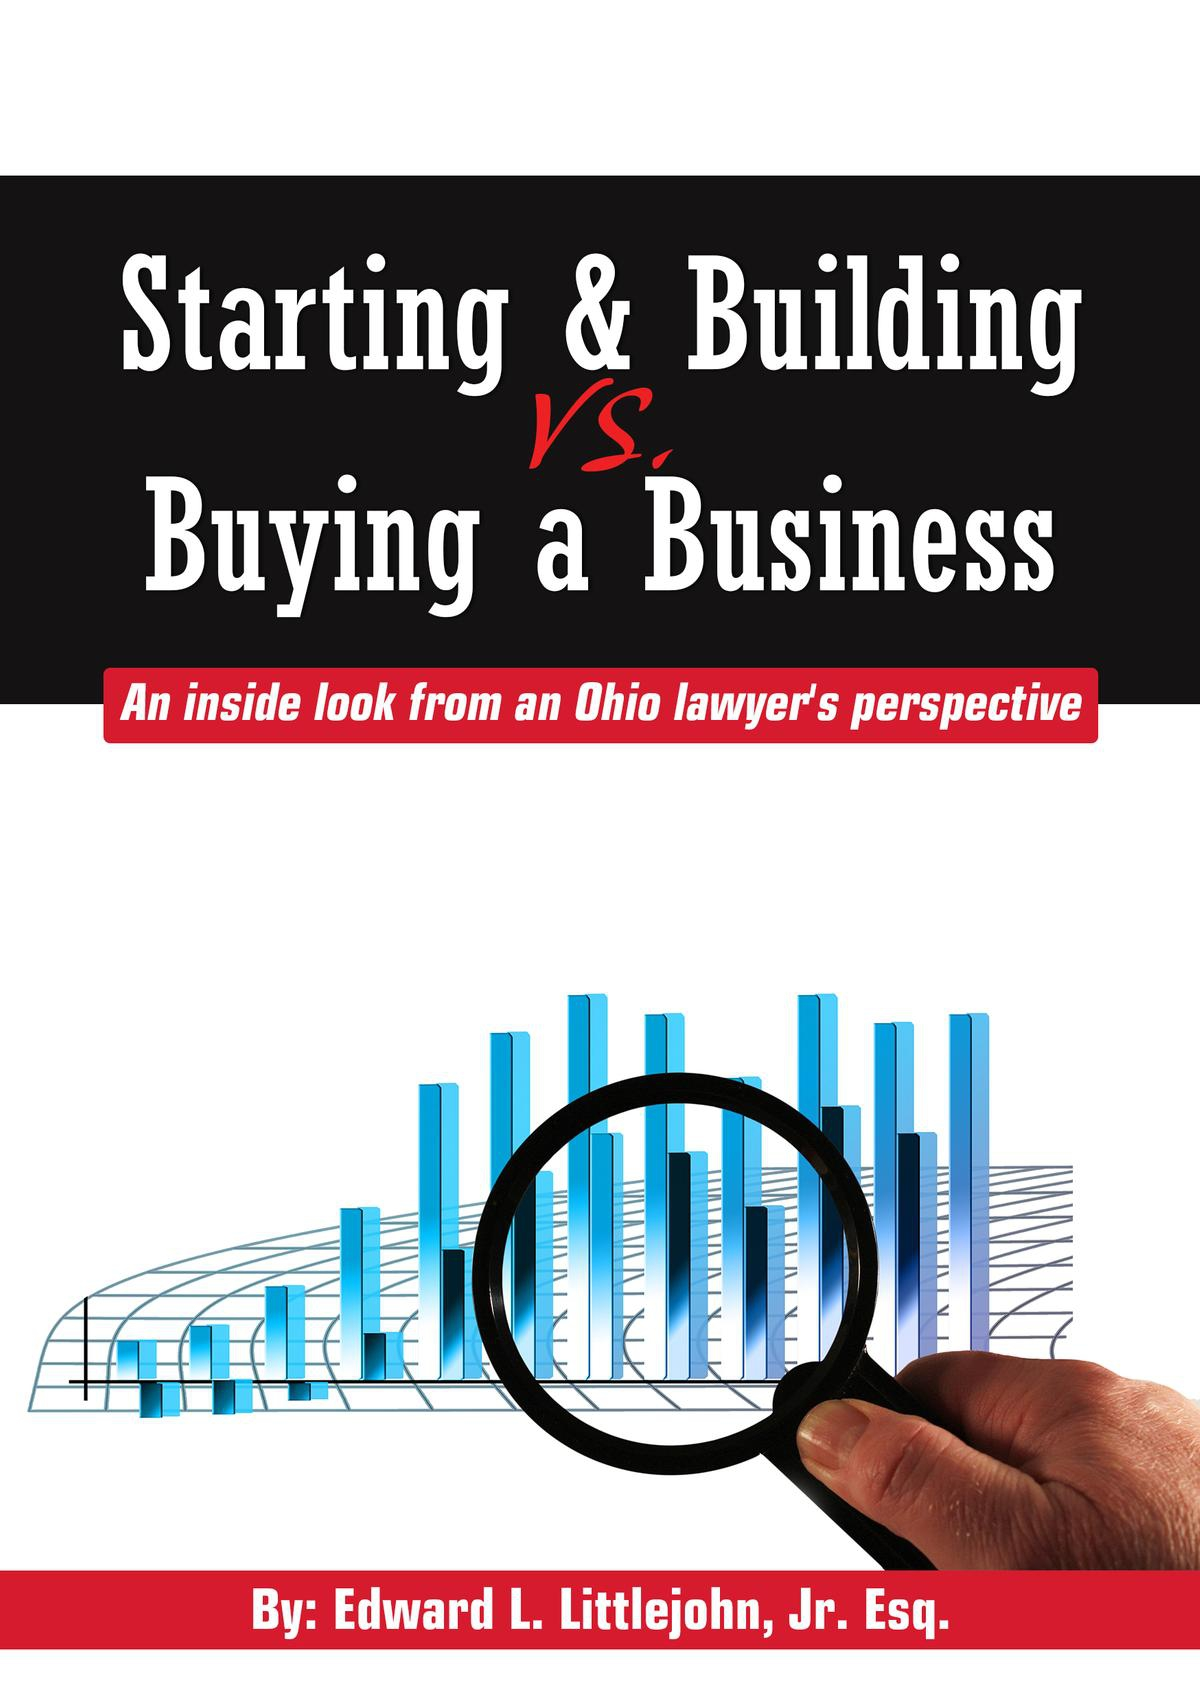 Ohio lawyer discusses differences between buying and building a business